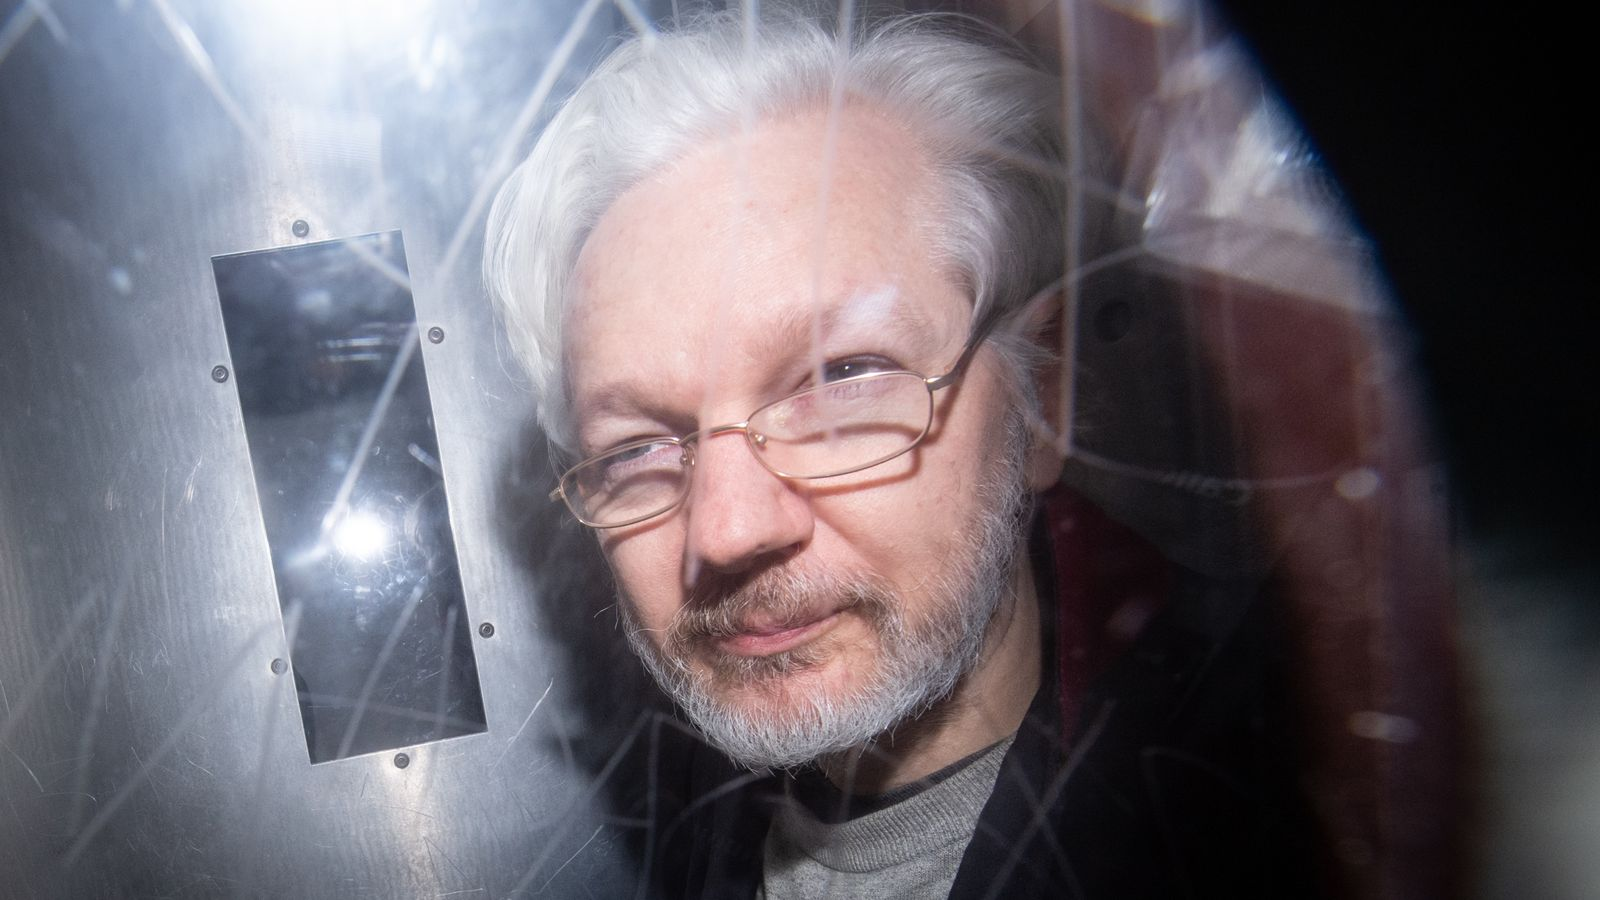 Trump 'offered Assange pardon if he said Russia not involved in leaked emails'